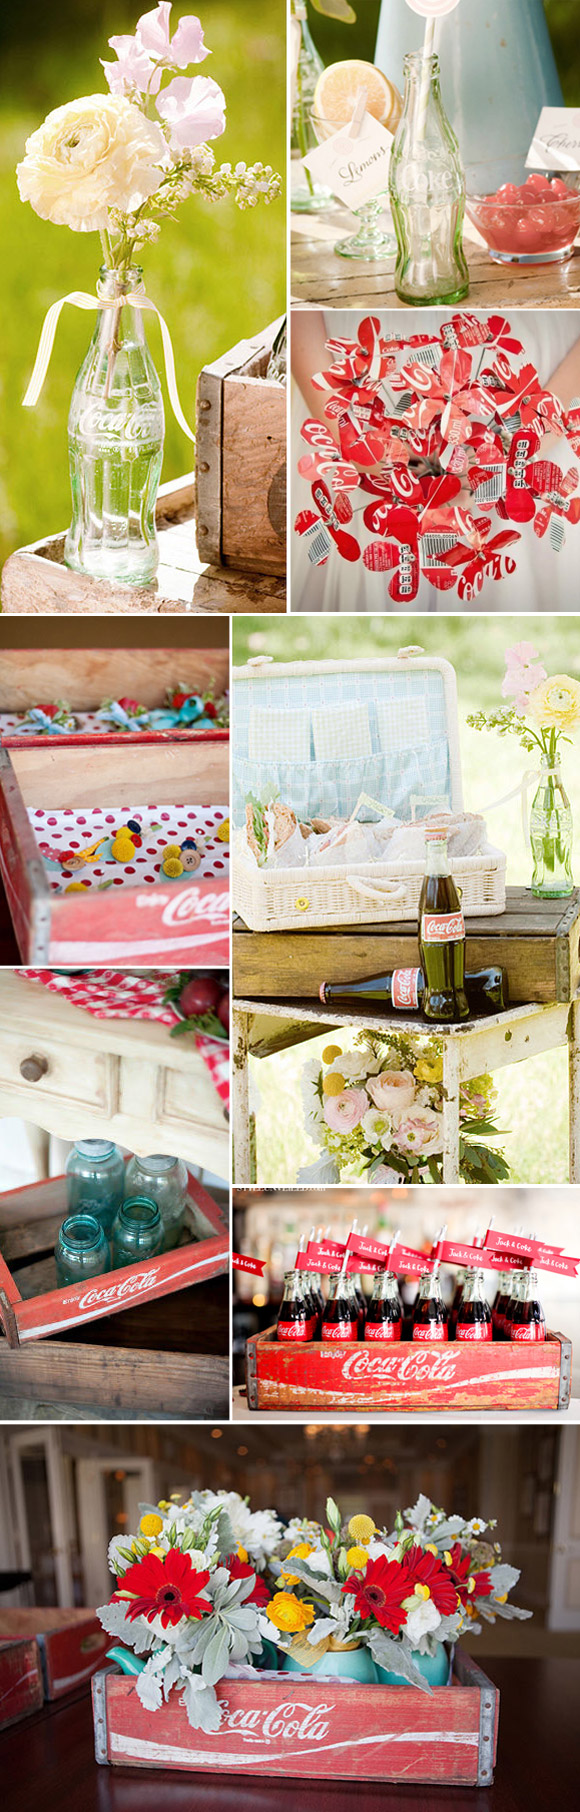 ideas-decoracion-bodas-botellas-coca-col